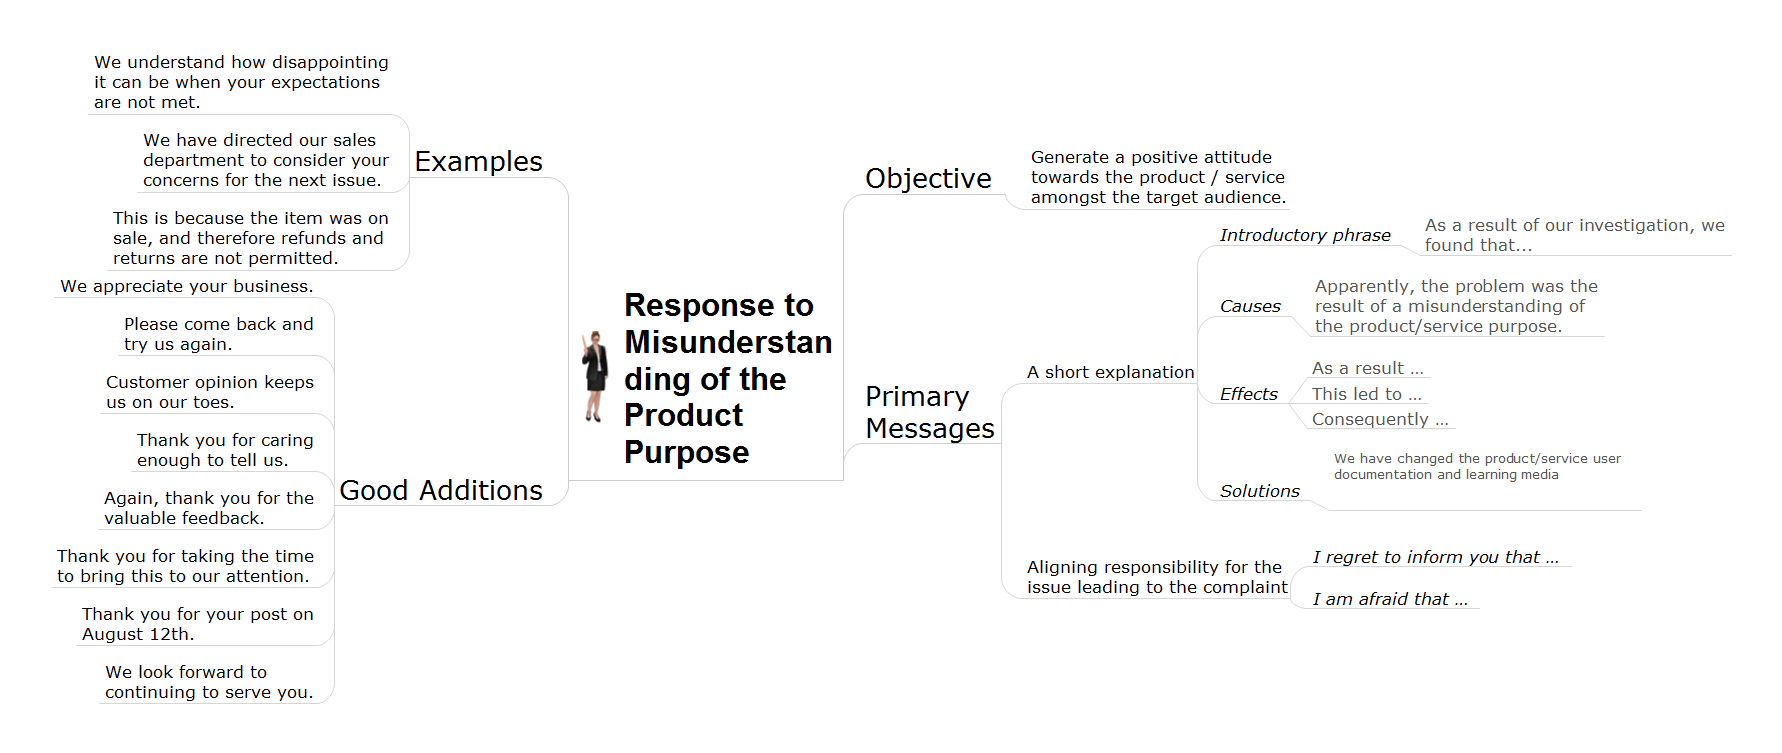 Action mindmap - Misunderstanding product purpose